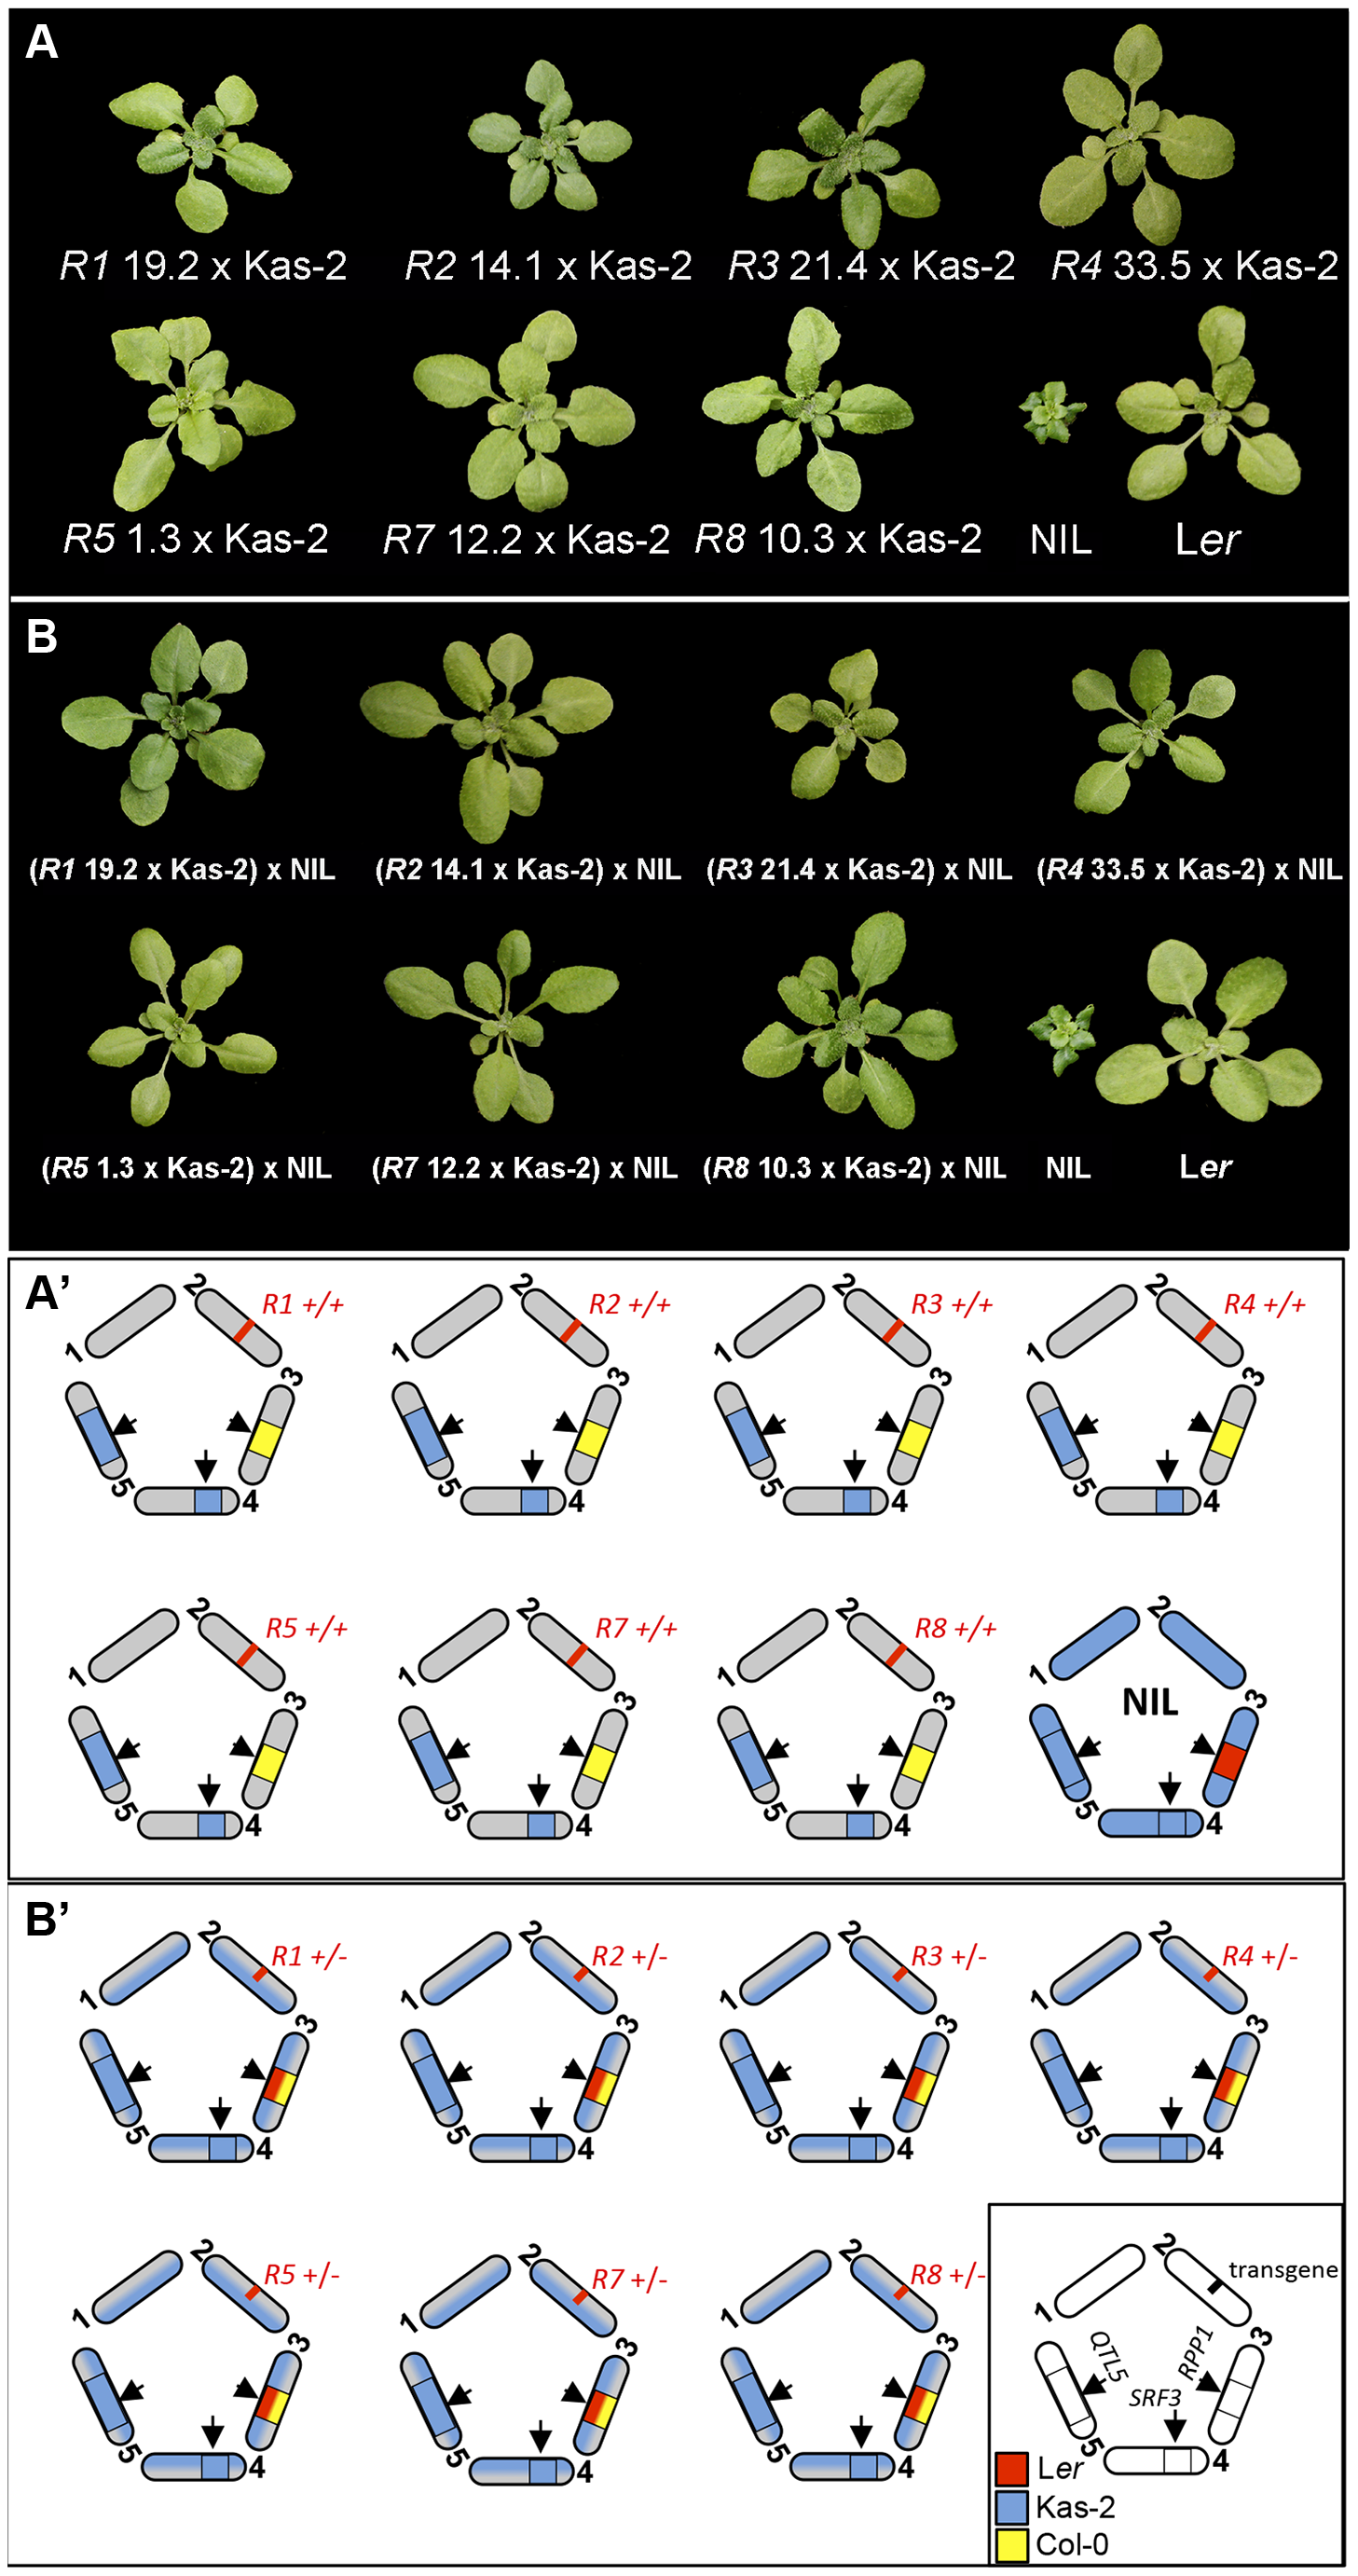 Growth phenotype at 14–16°C of Col<i><sup>RPP1</sup></i>/Kas-2 plants and <i>RPP1</i>-like L<i>er</i> hemizygous lines.